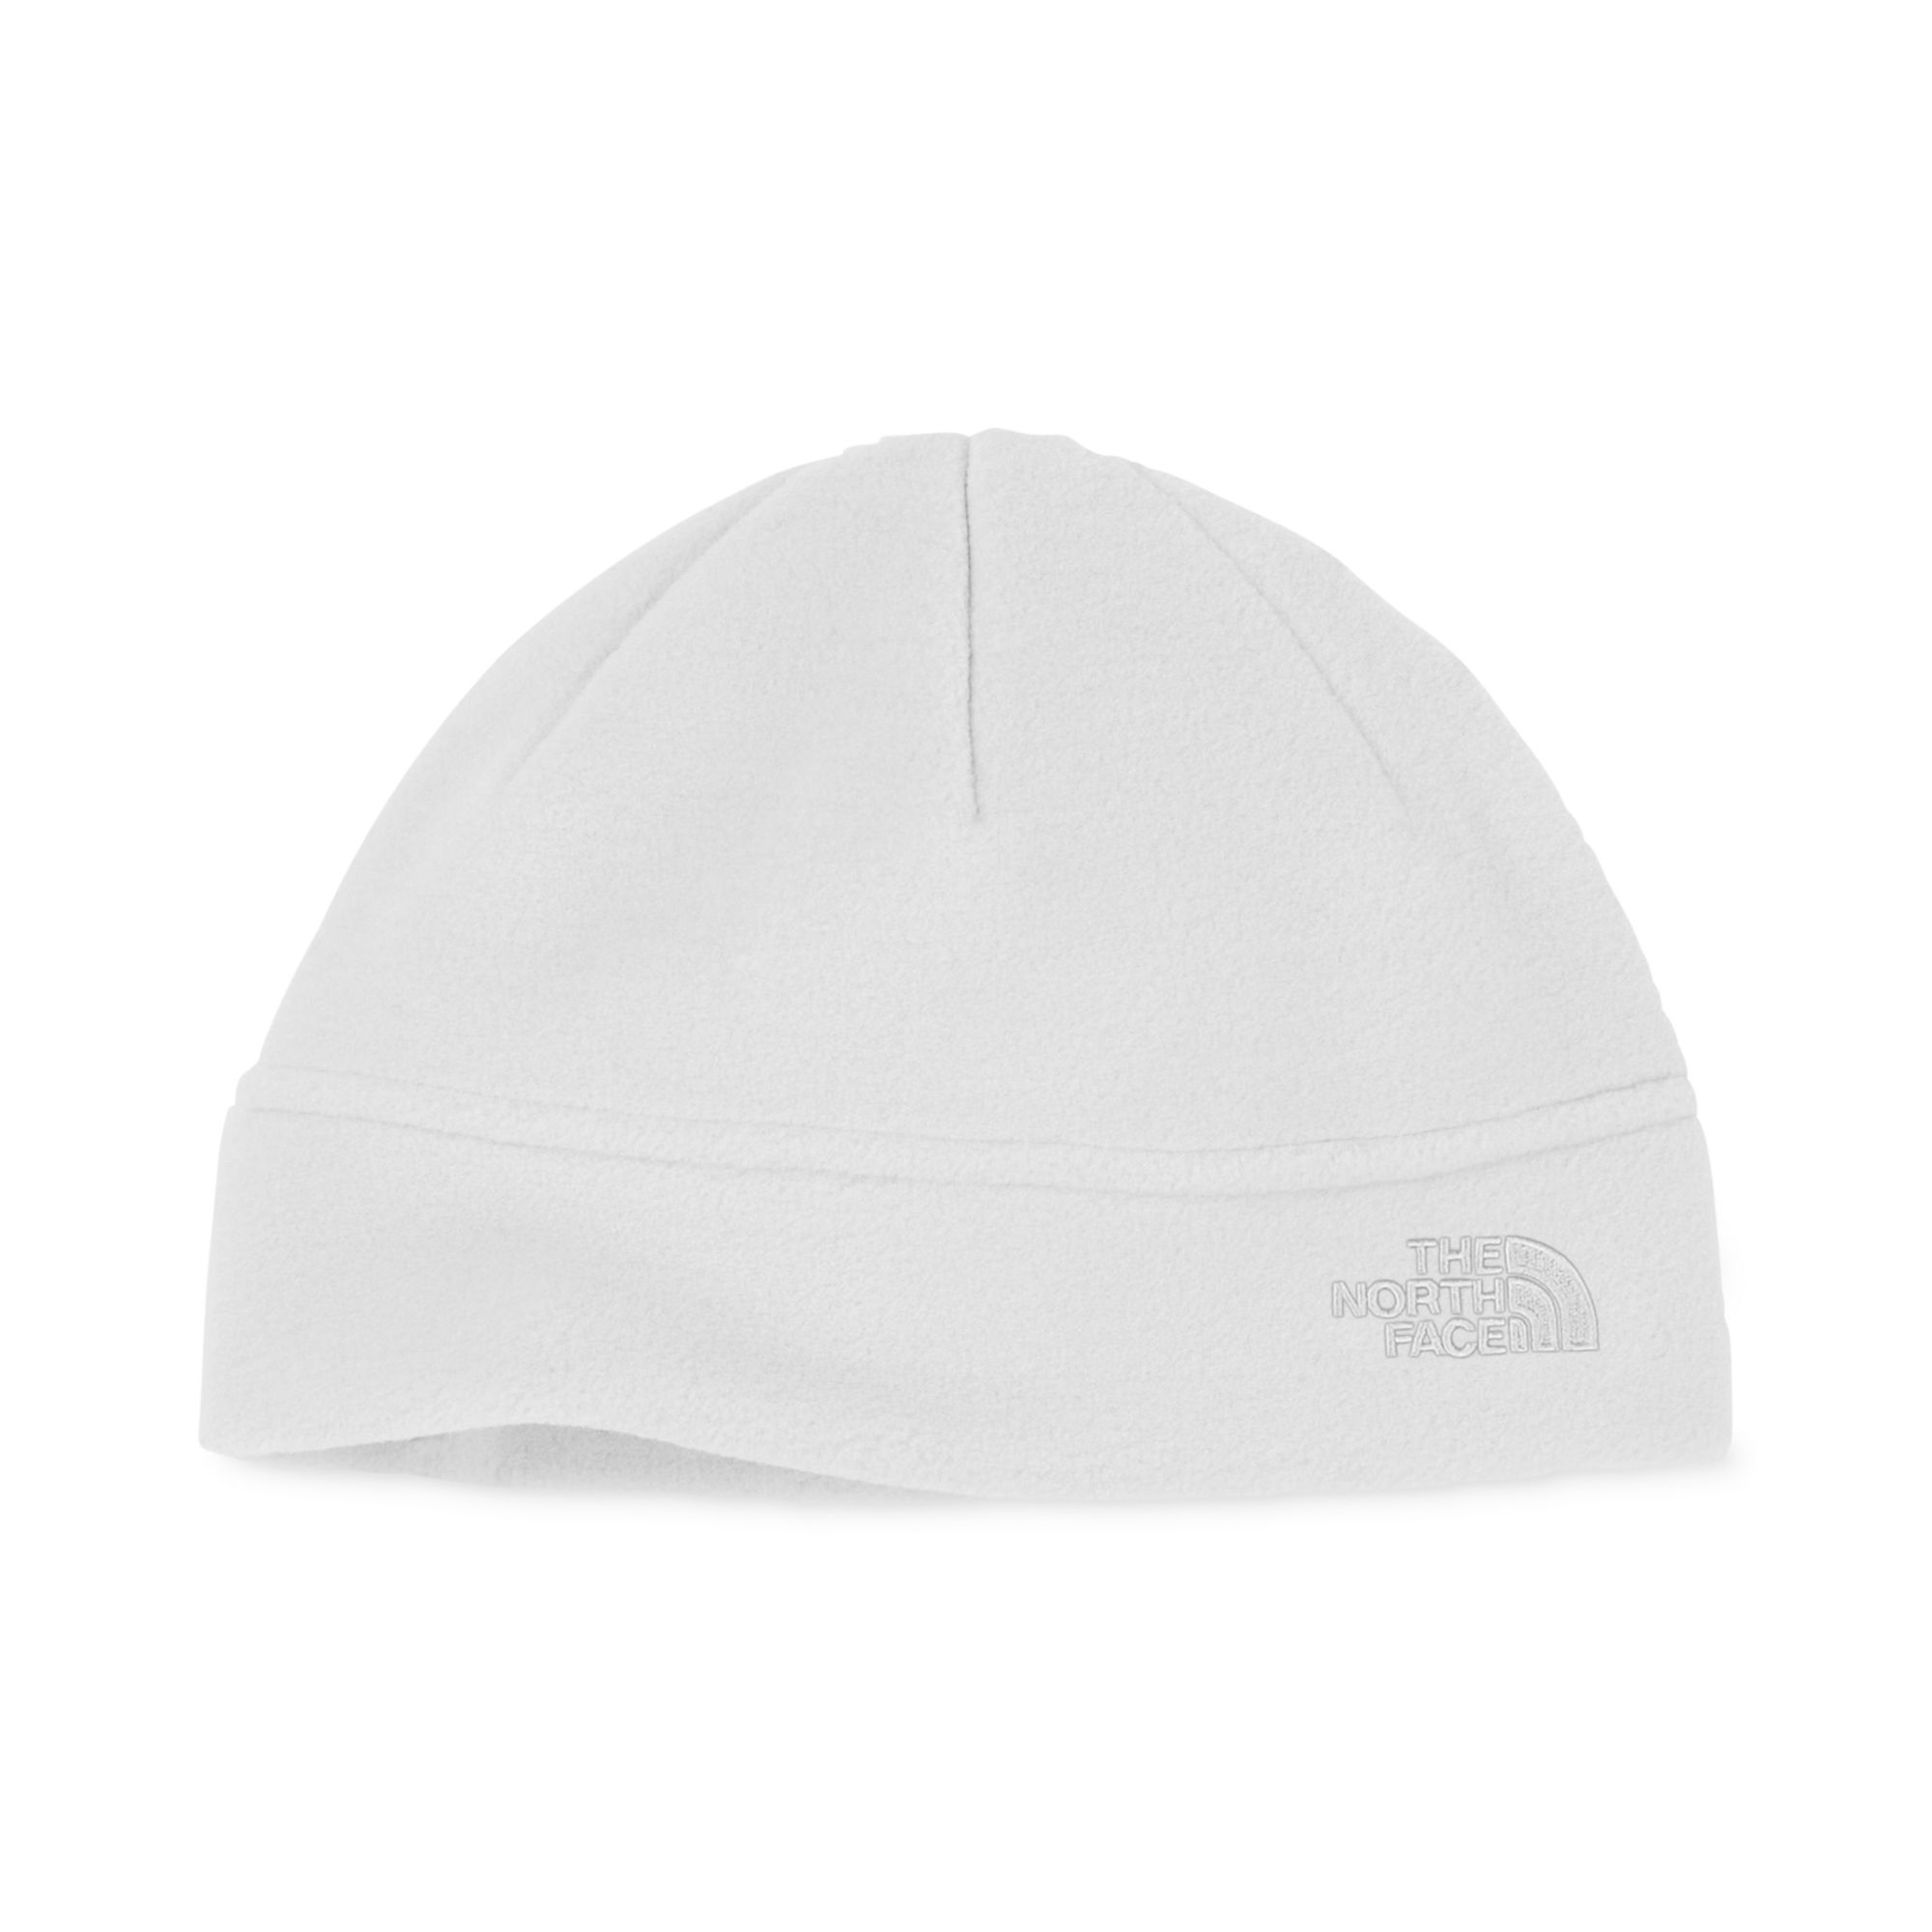 4dafed71580 Lyst the north face hat in white jpg 2000x2000 White north face hats